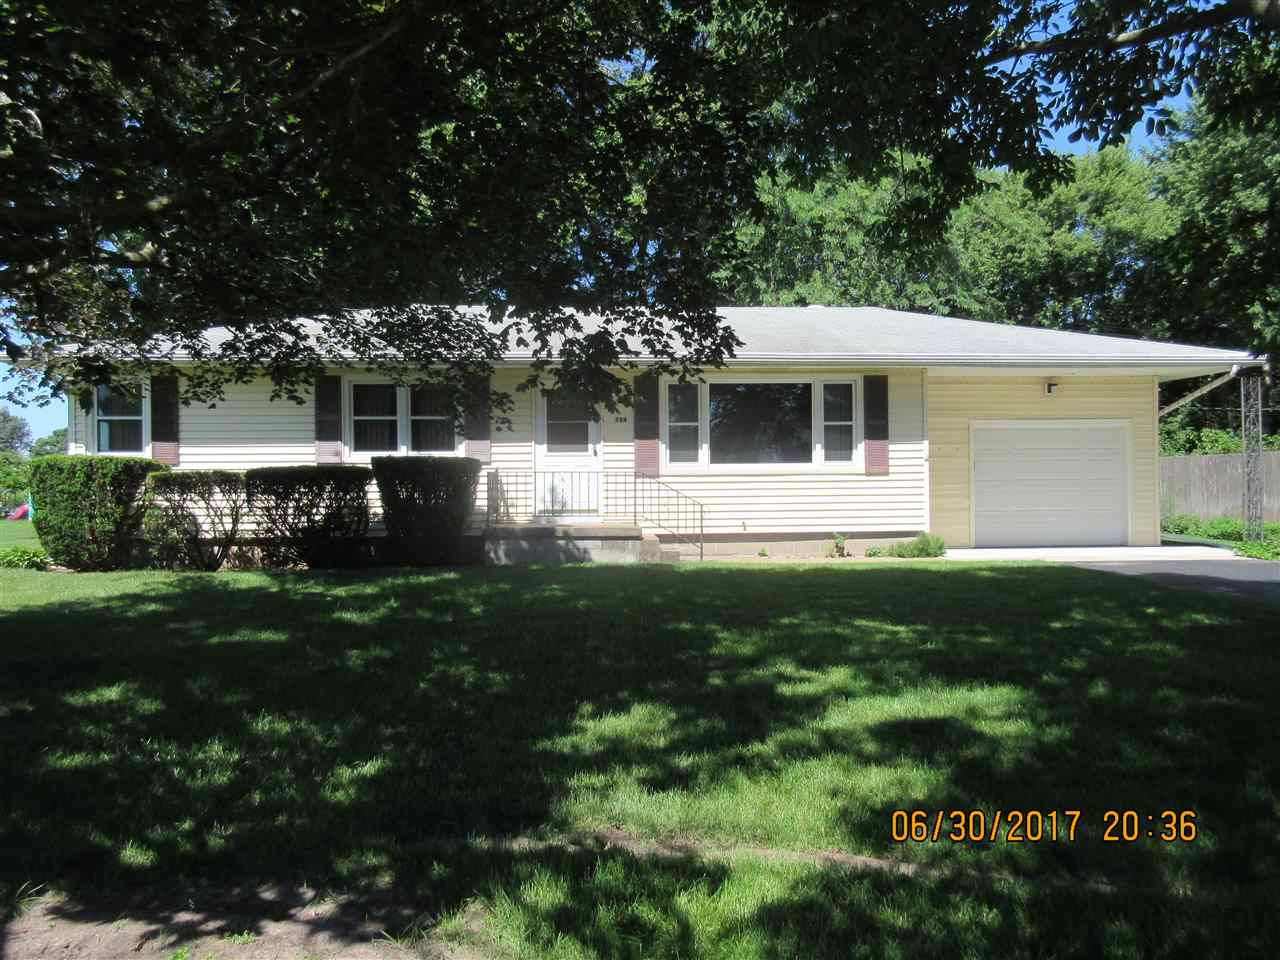 Illinois henry county osco - 2 Homes For Sale For Andover Il View All